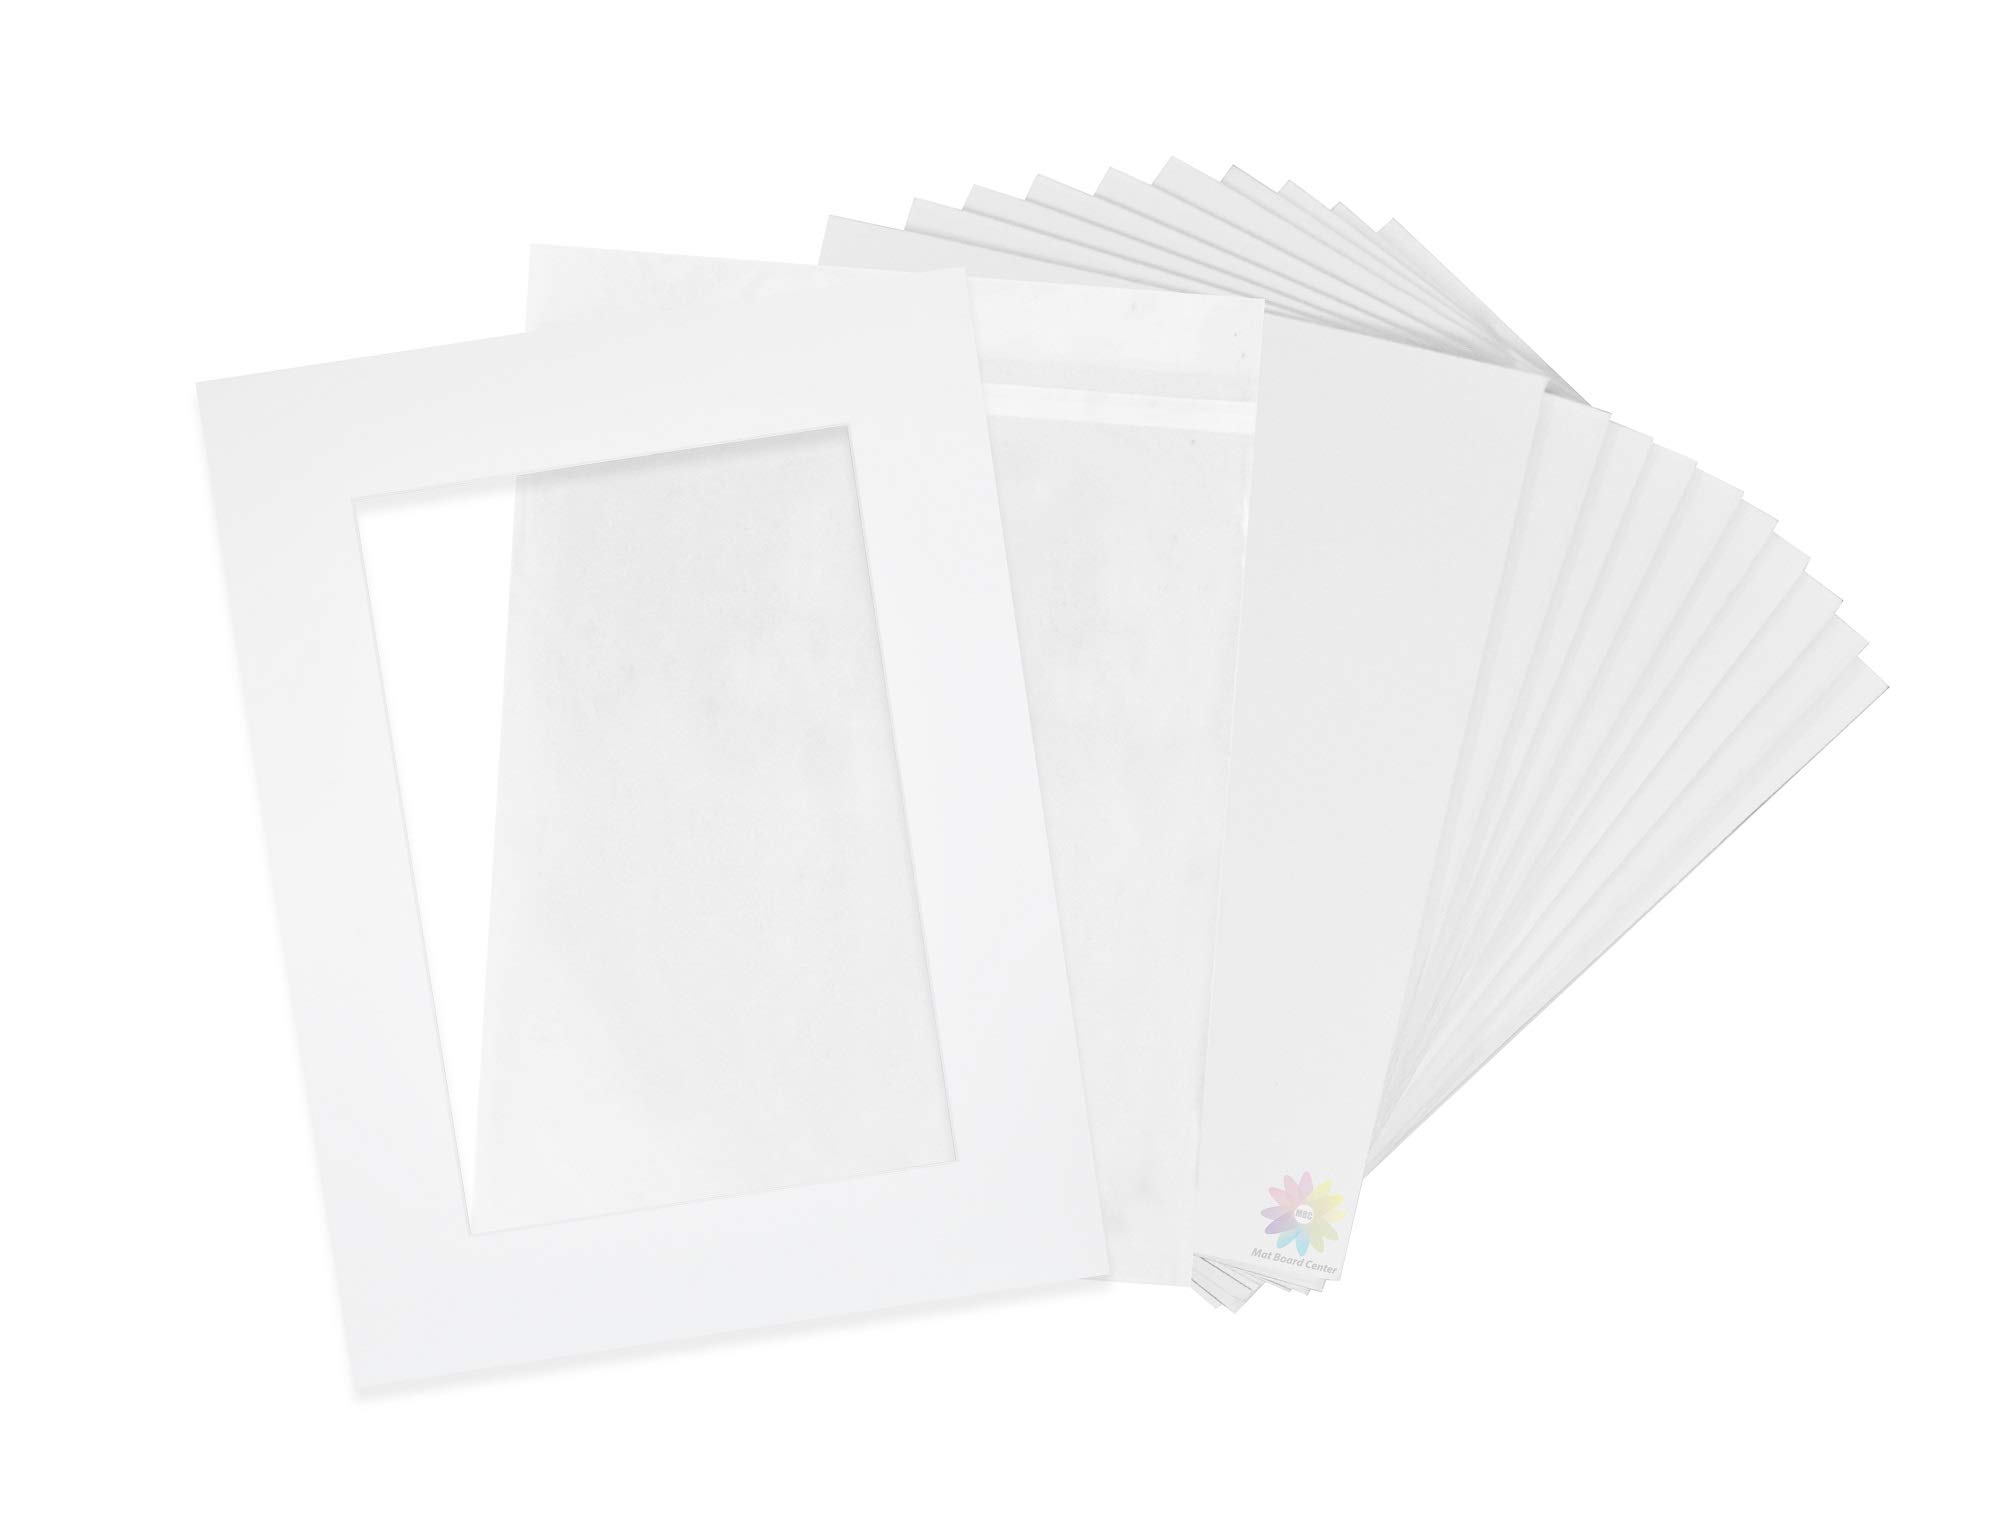 Pack of 10-18x24 Pre-Cut 12x18 - White Mats - for Pictures, Photos, Framing - Kit Includes: 10 White Backboards and 10 Clear Bags - Acid Free, 4-ply Thickness, White Core